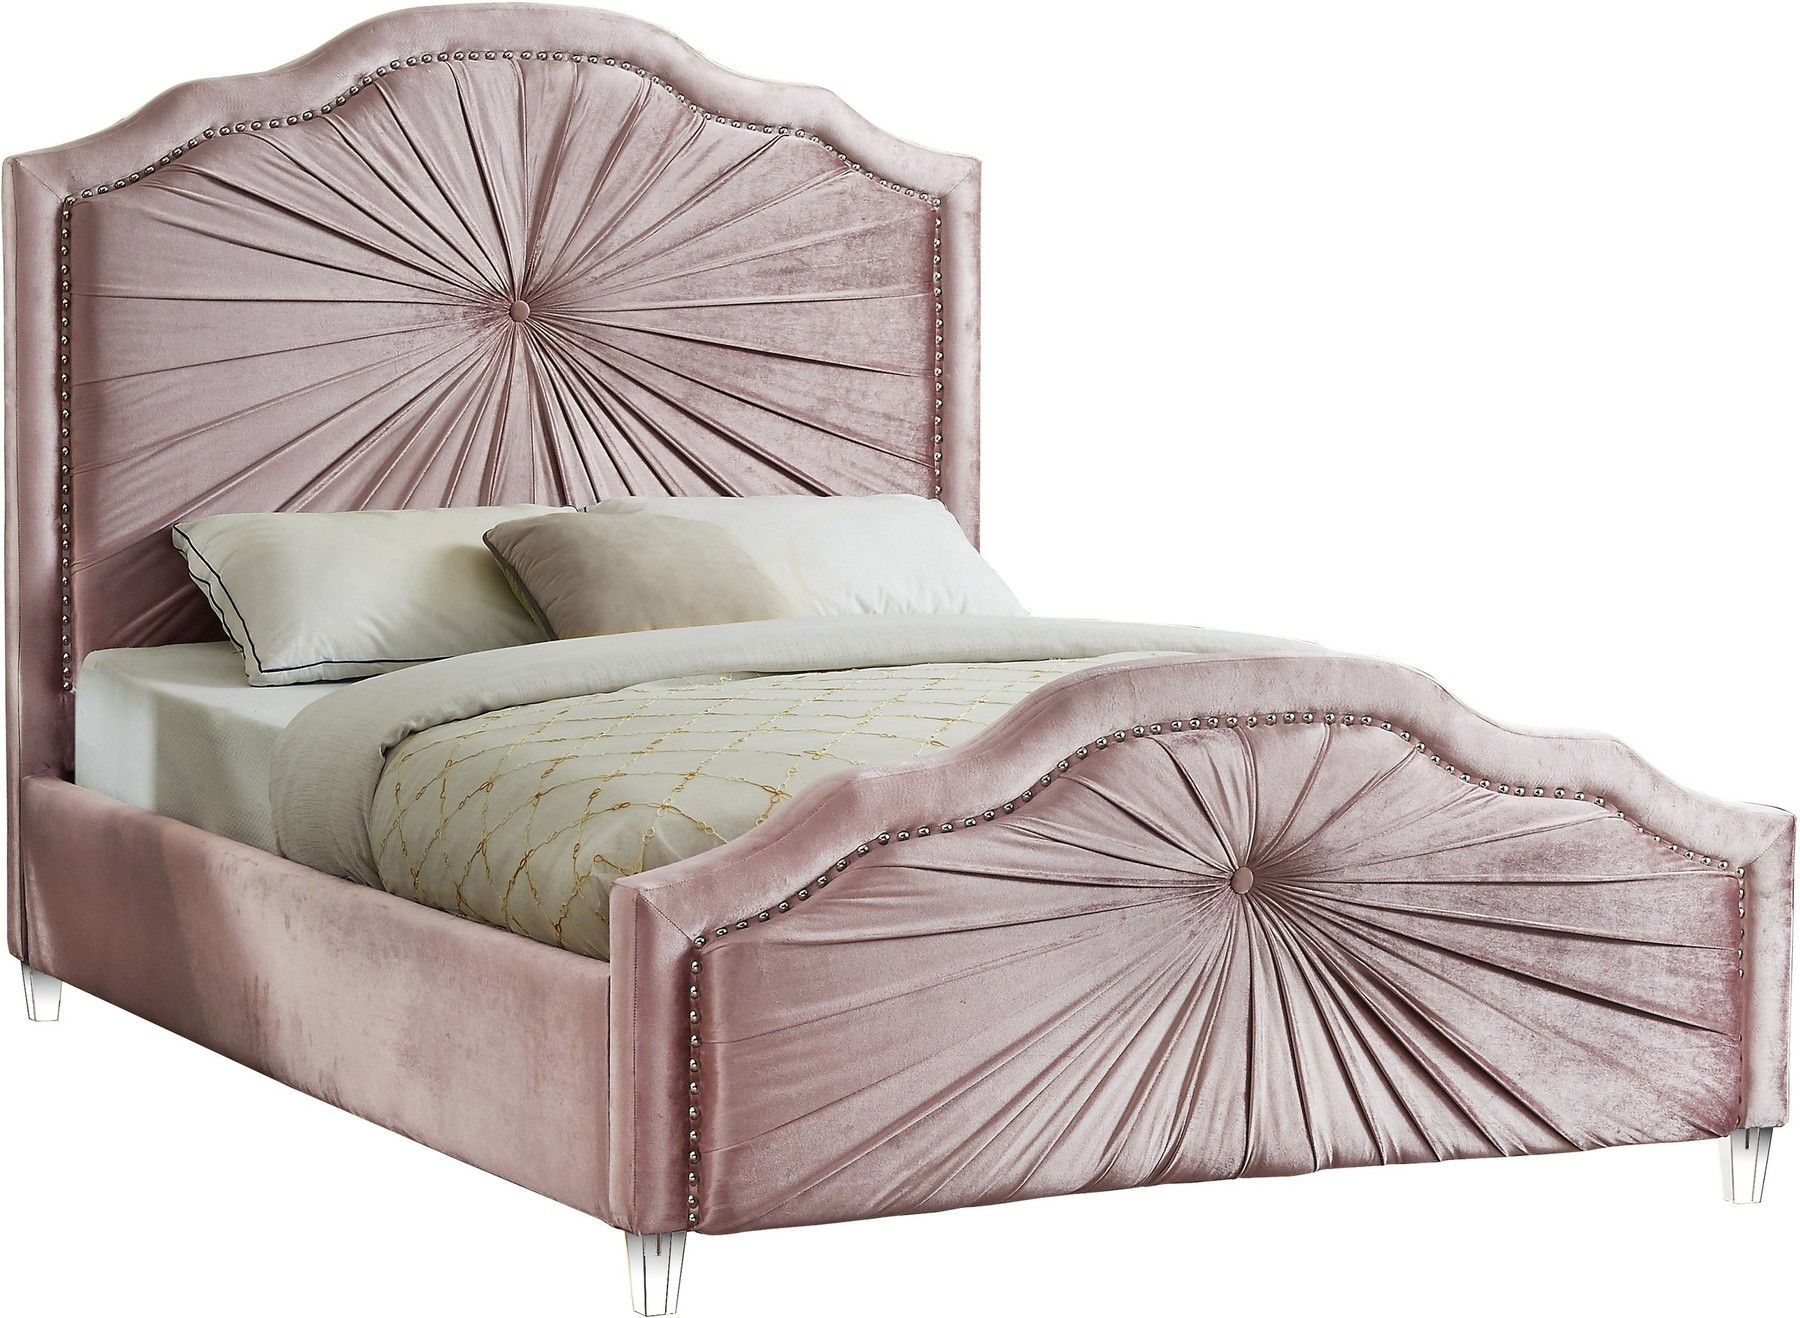 Rosie Pink Queen Size Bed In 2020 Velvet Upholstered Bed Meridian Furniture Velvet Bed